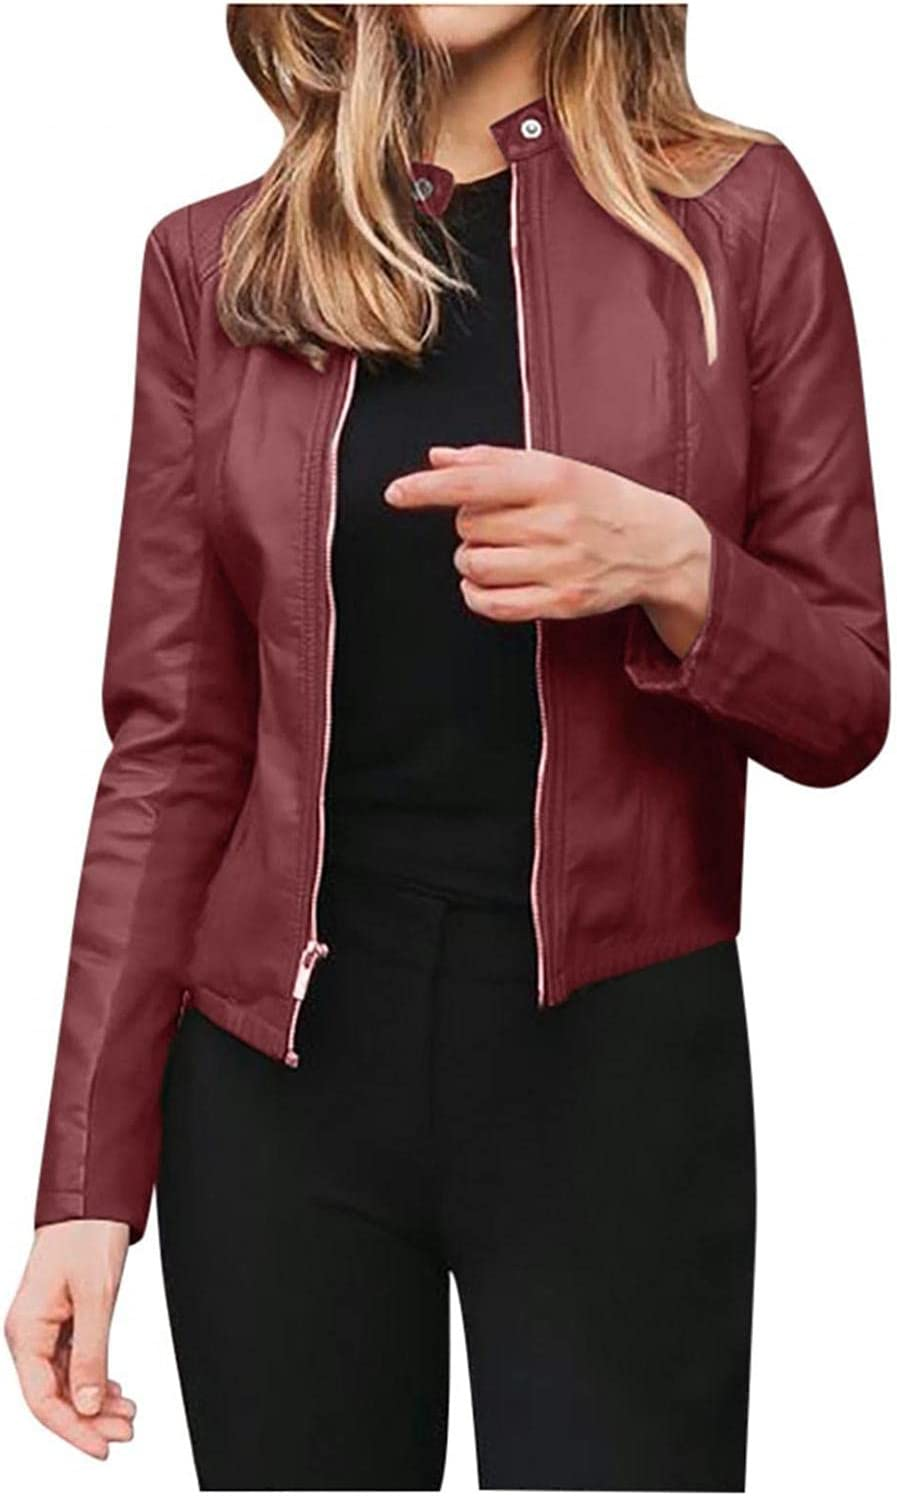 Smileyth Women Faux Leather Jackets - Solid Color Zipper Long Sleeve Open Front Short Cardigan Coat Outerwear